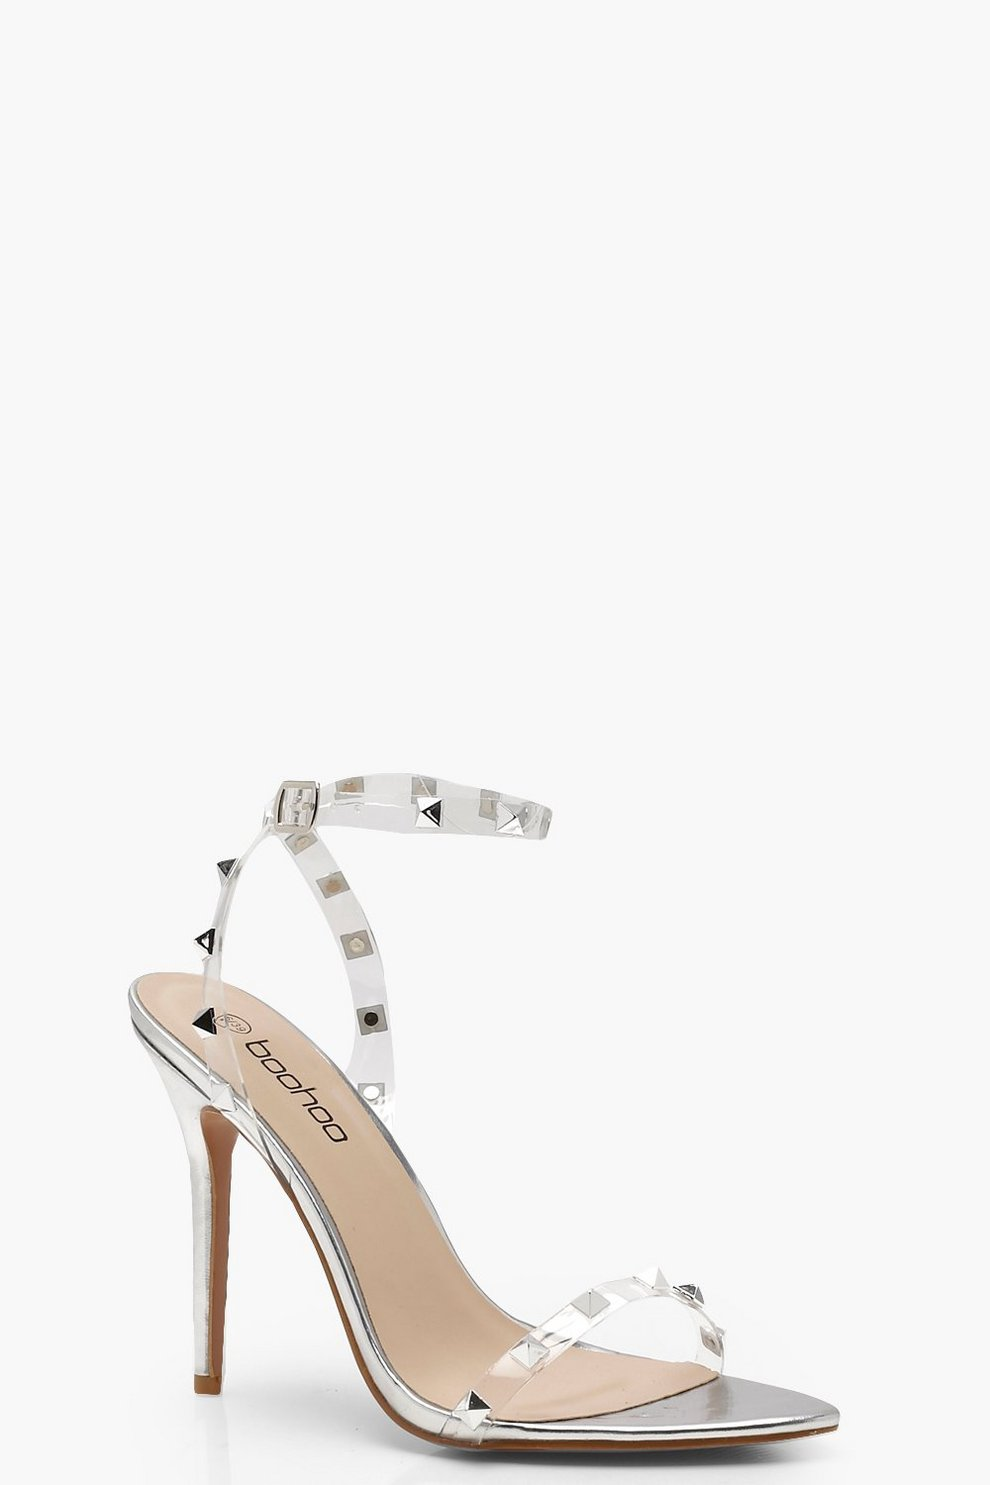 6f055136a6 Clear Studded Strap Barely There Heels | Boohoo